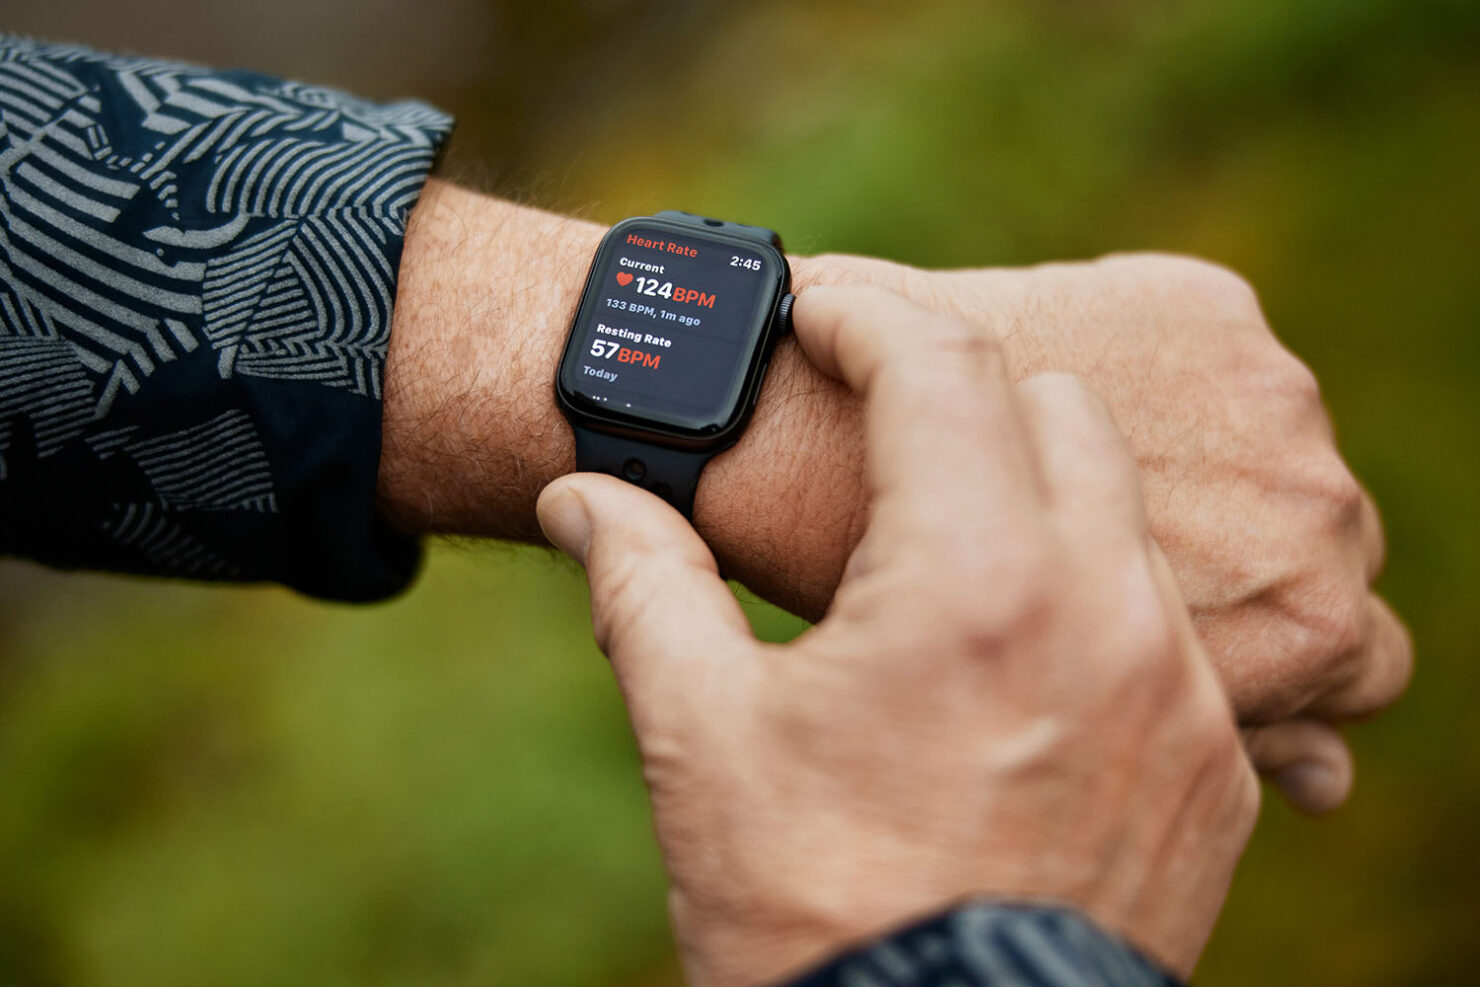 Apple Watch Alerted 59-Year Old to Irregular Heart Readings, Helped Him Seek Medical Attention and Potentially Saved His Life